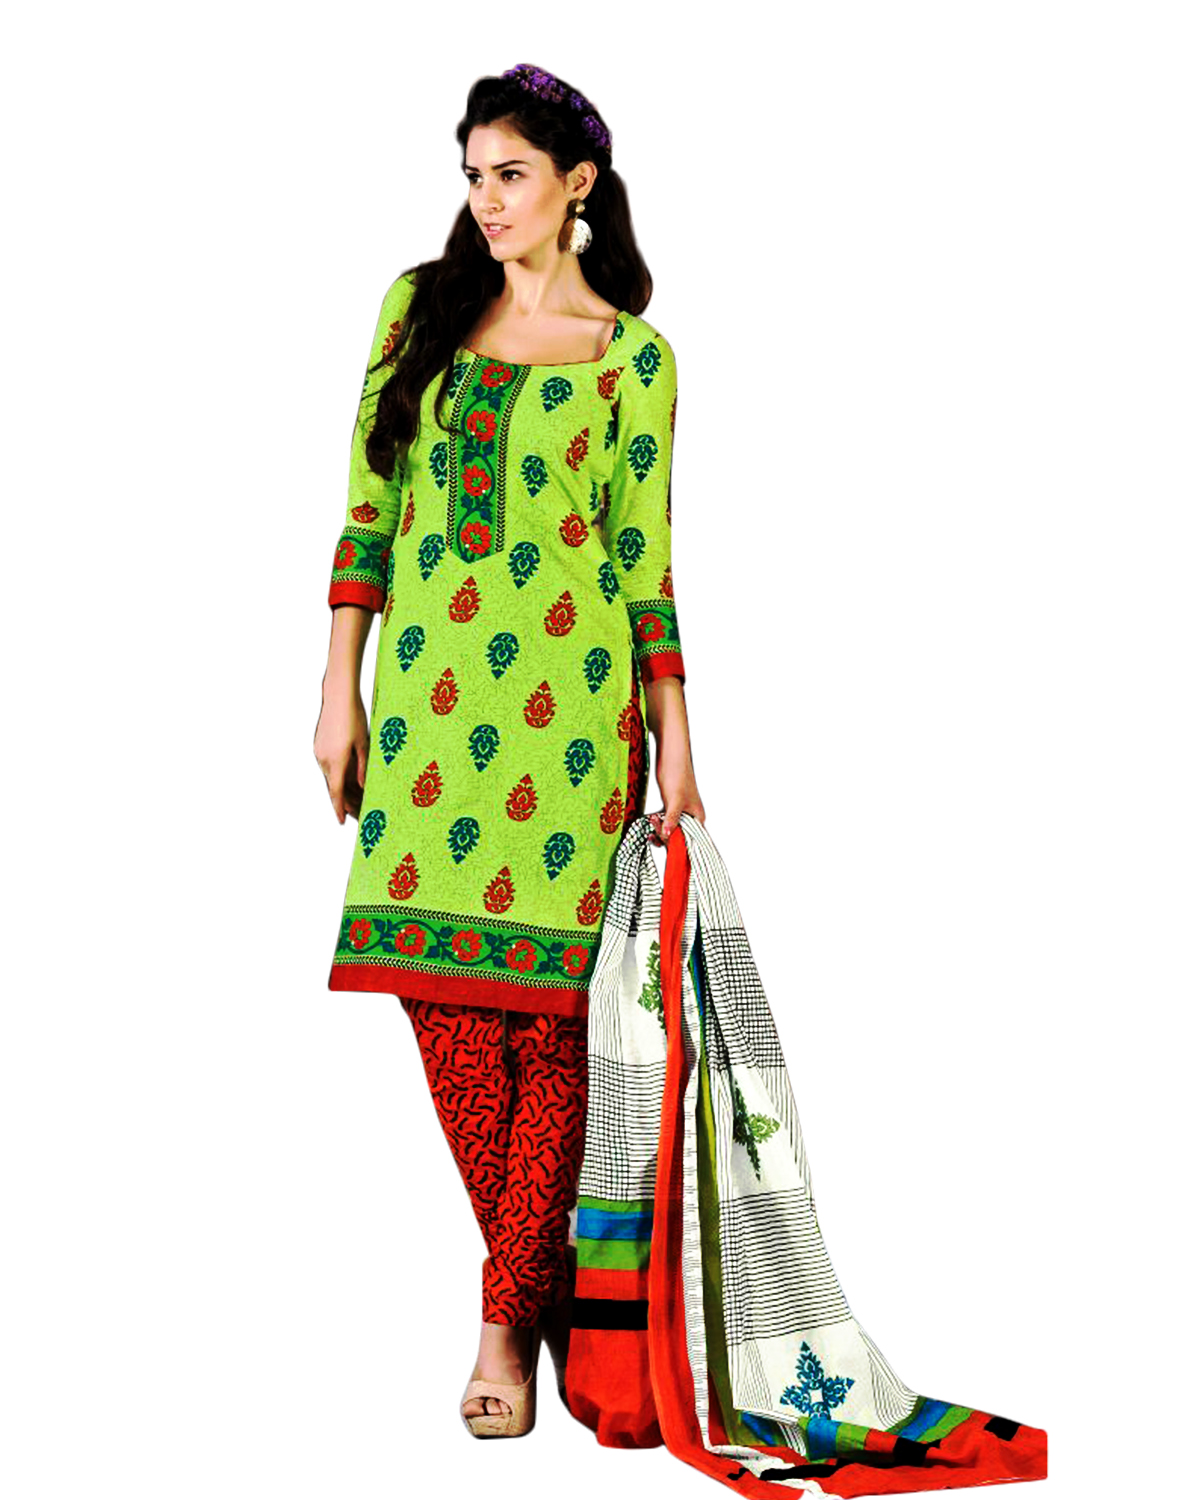 Drapes Red And Green Cotton Printed Salwar Suit Dress Material  Unstitched